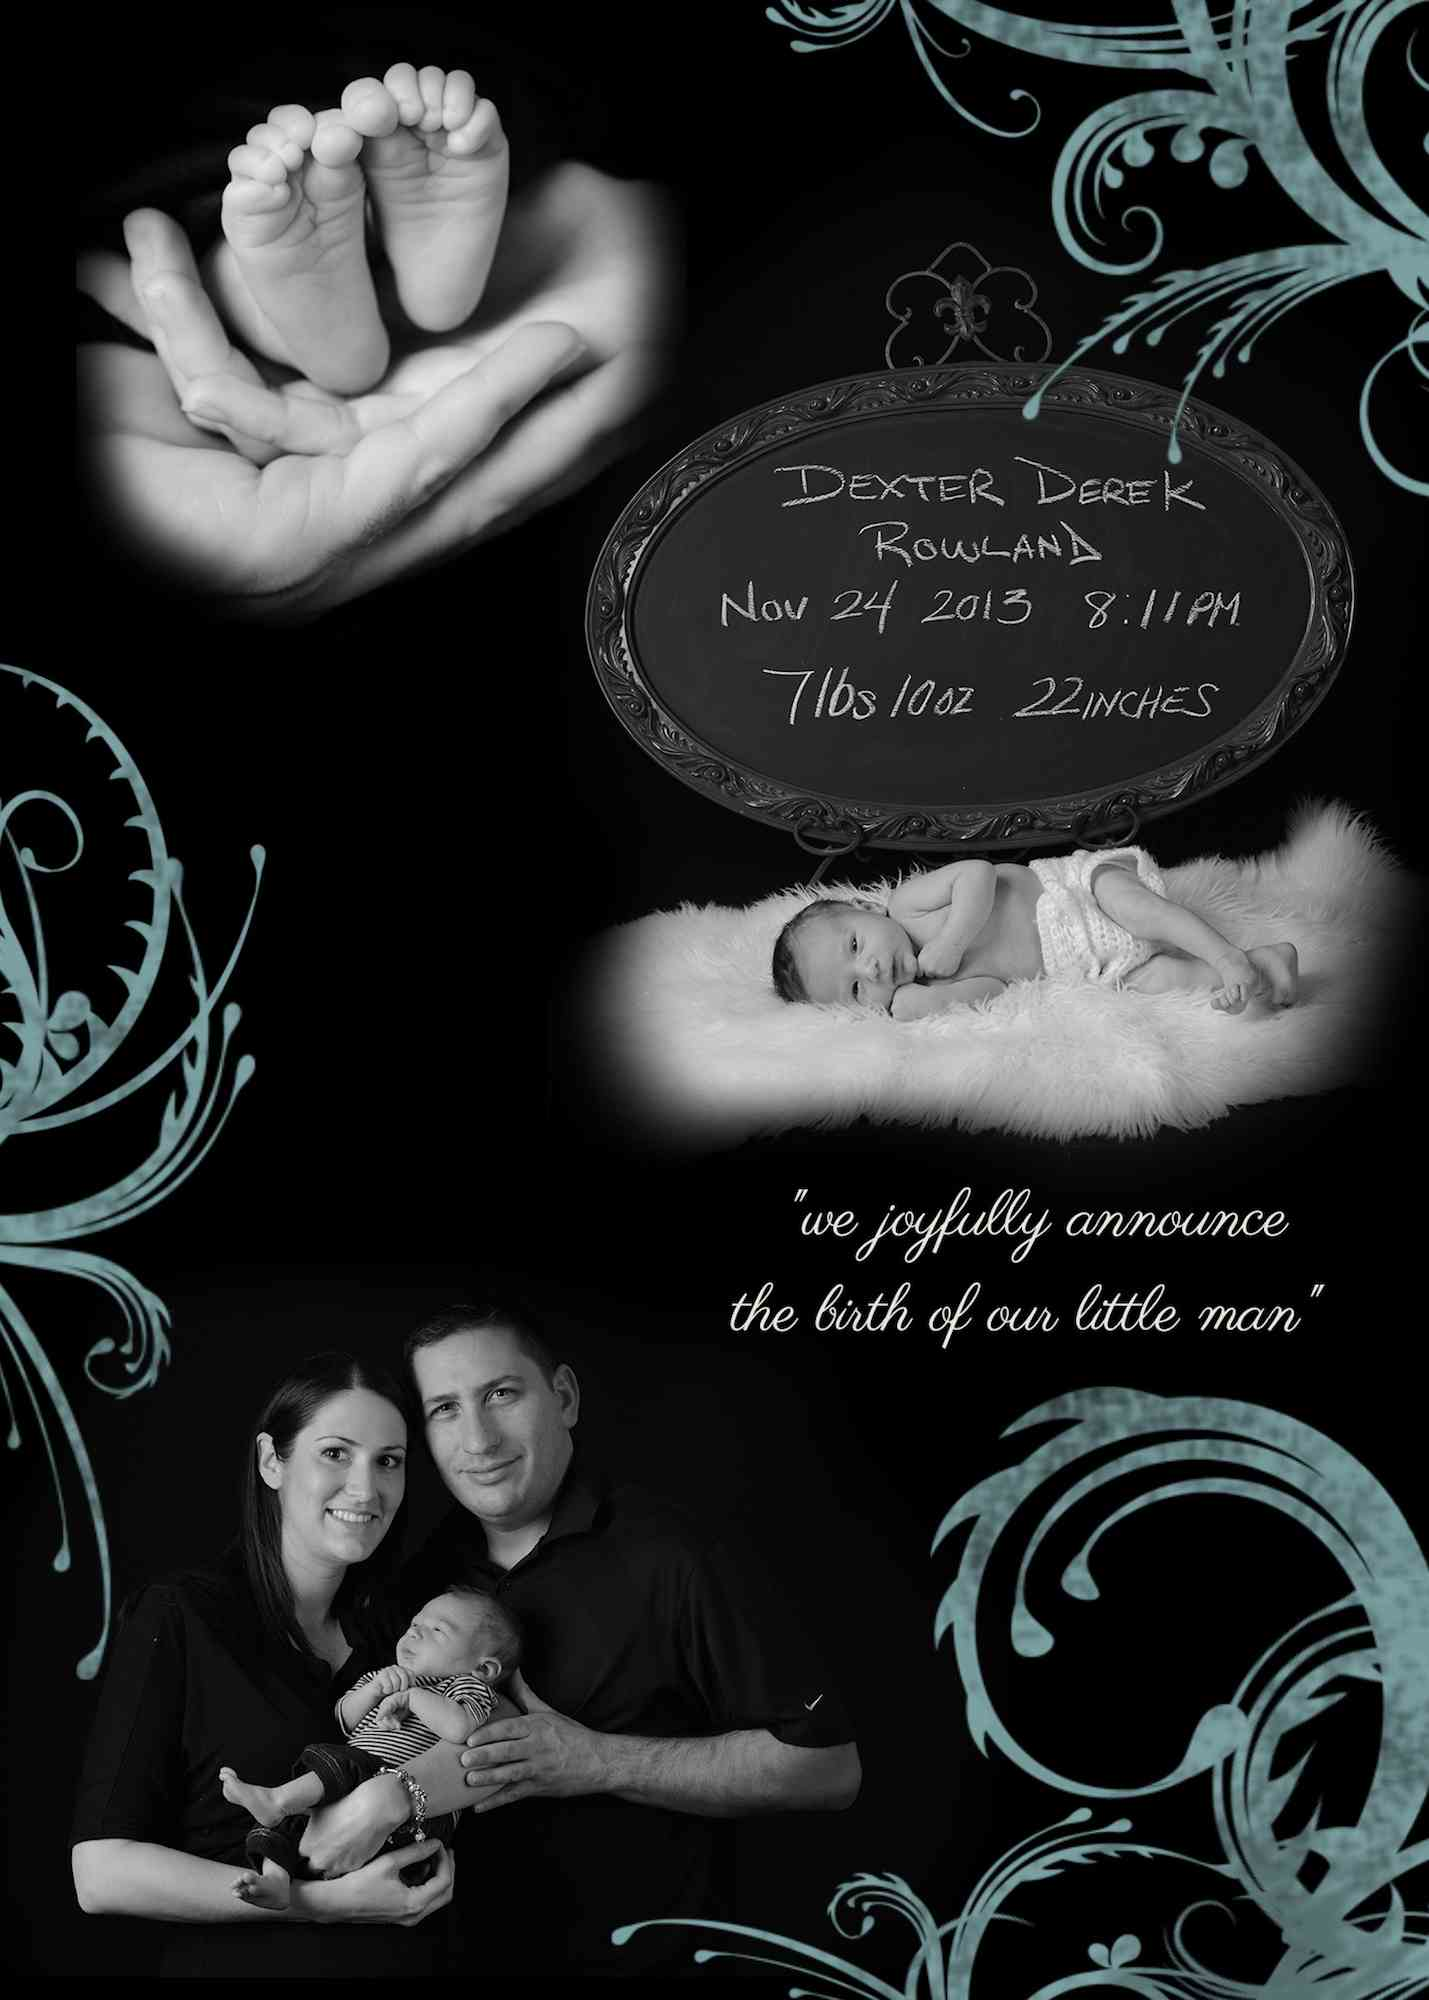 Kristi_birth announcement